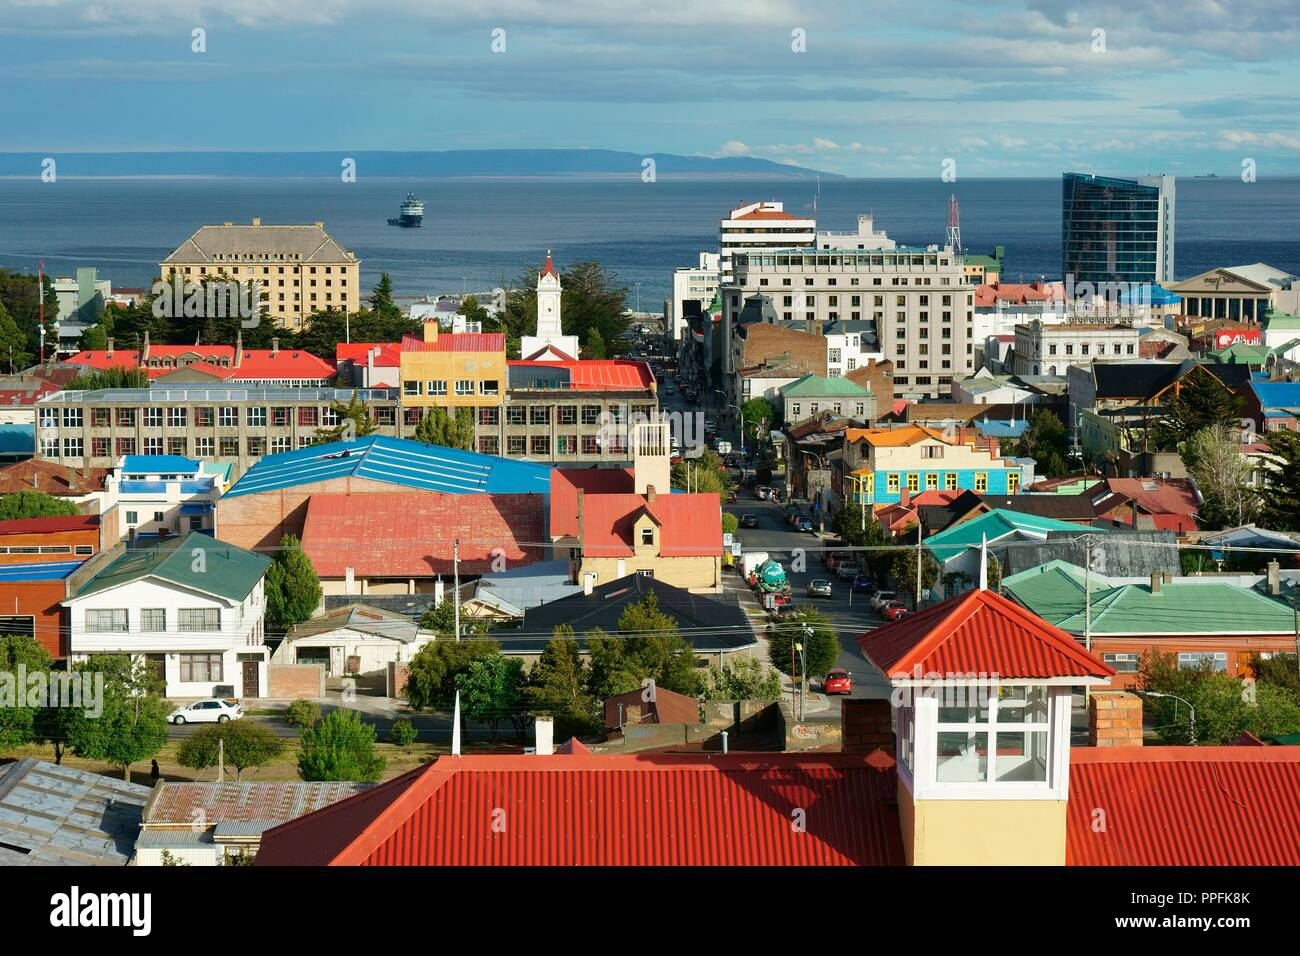 View over the city on the Magellan Strait, behind Tierra del Fuego, Punta Arenas, Magallanes, Patagonia, Chile - Stock Image